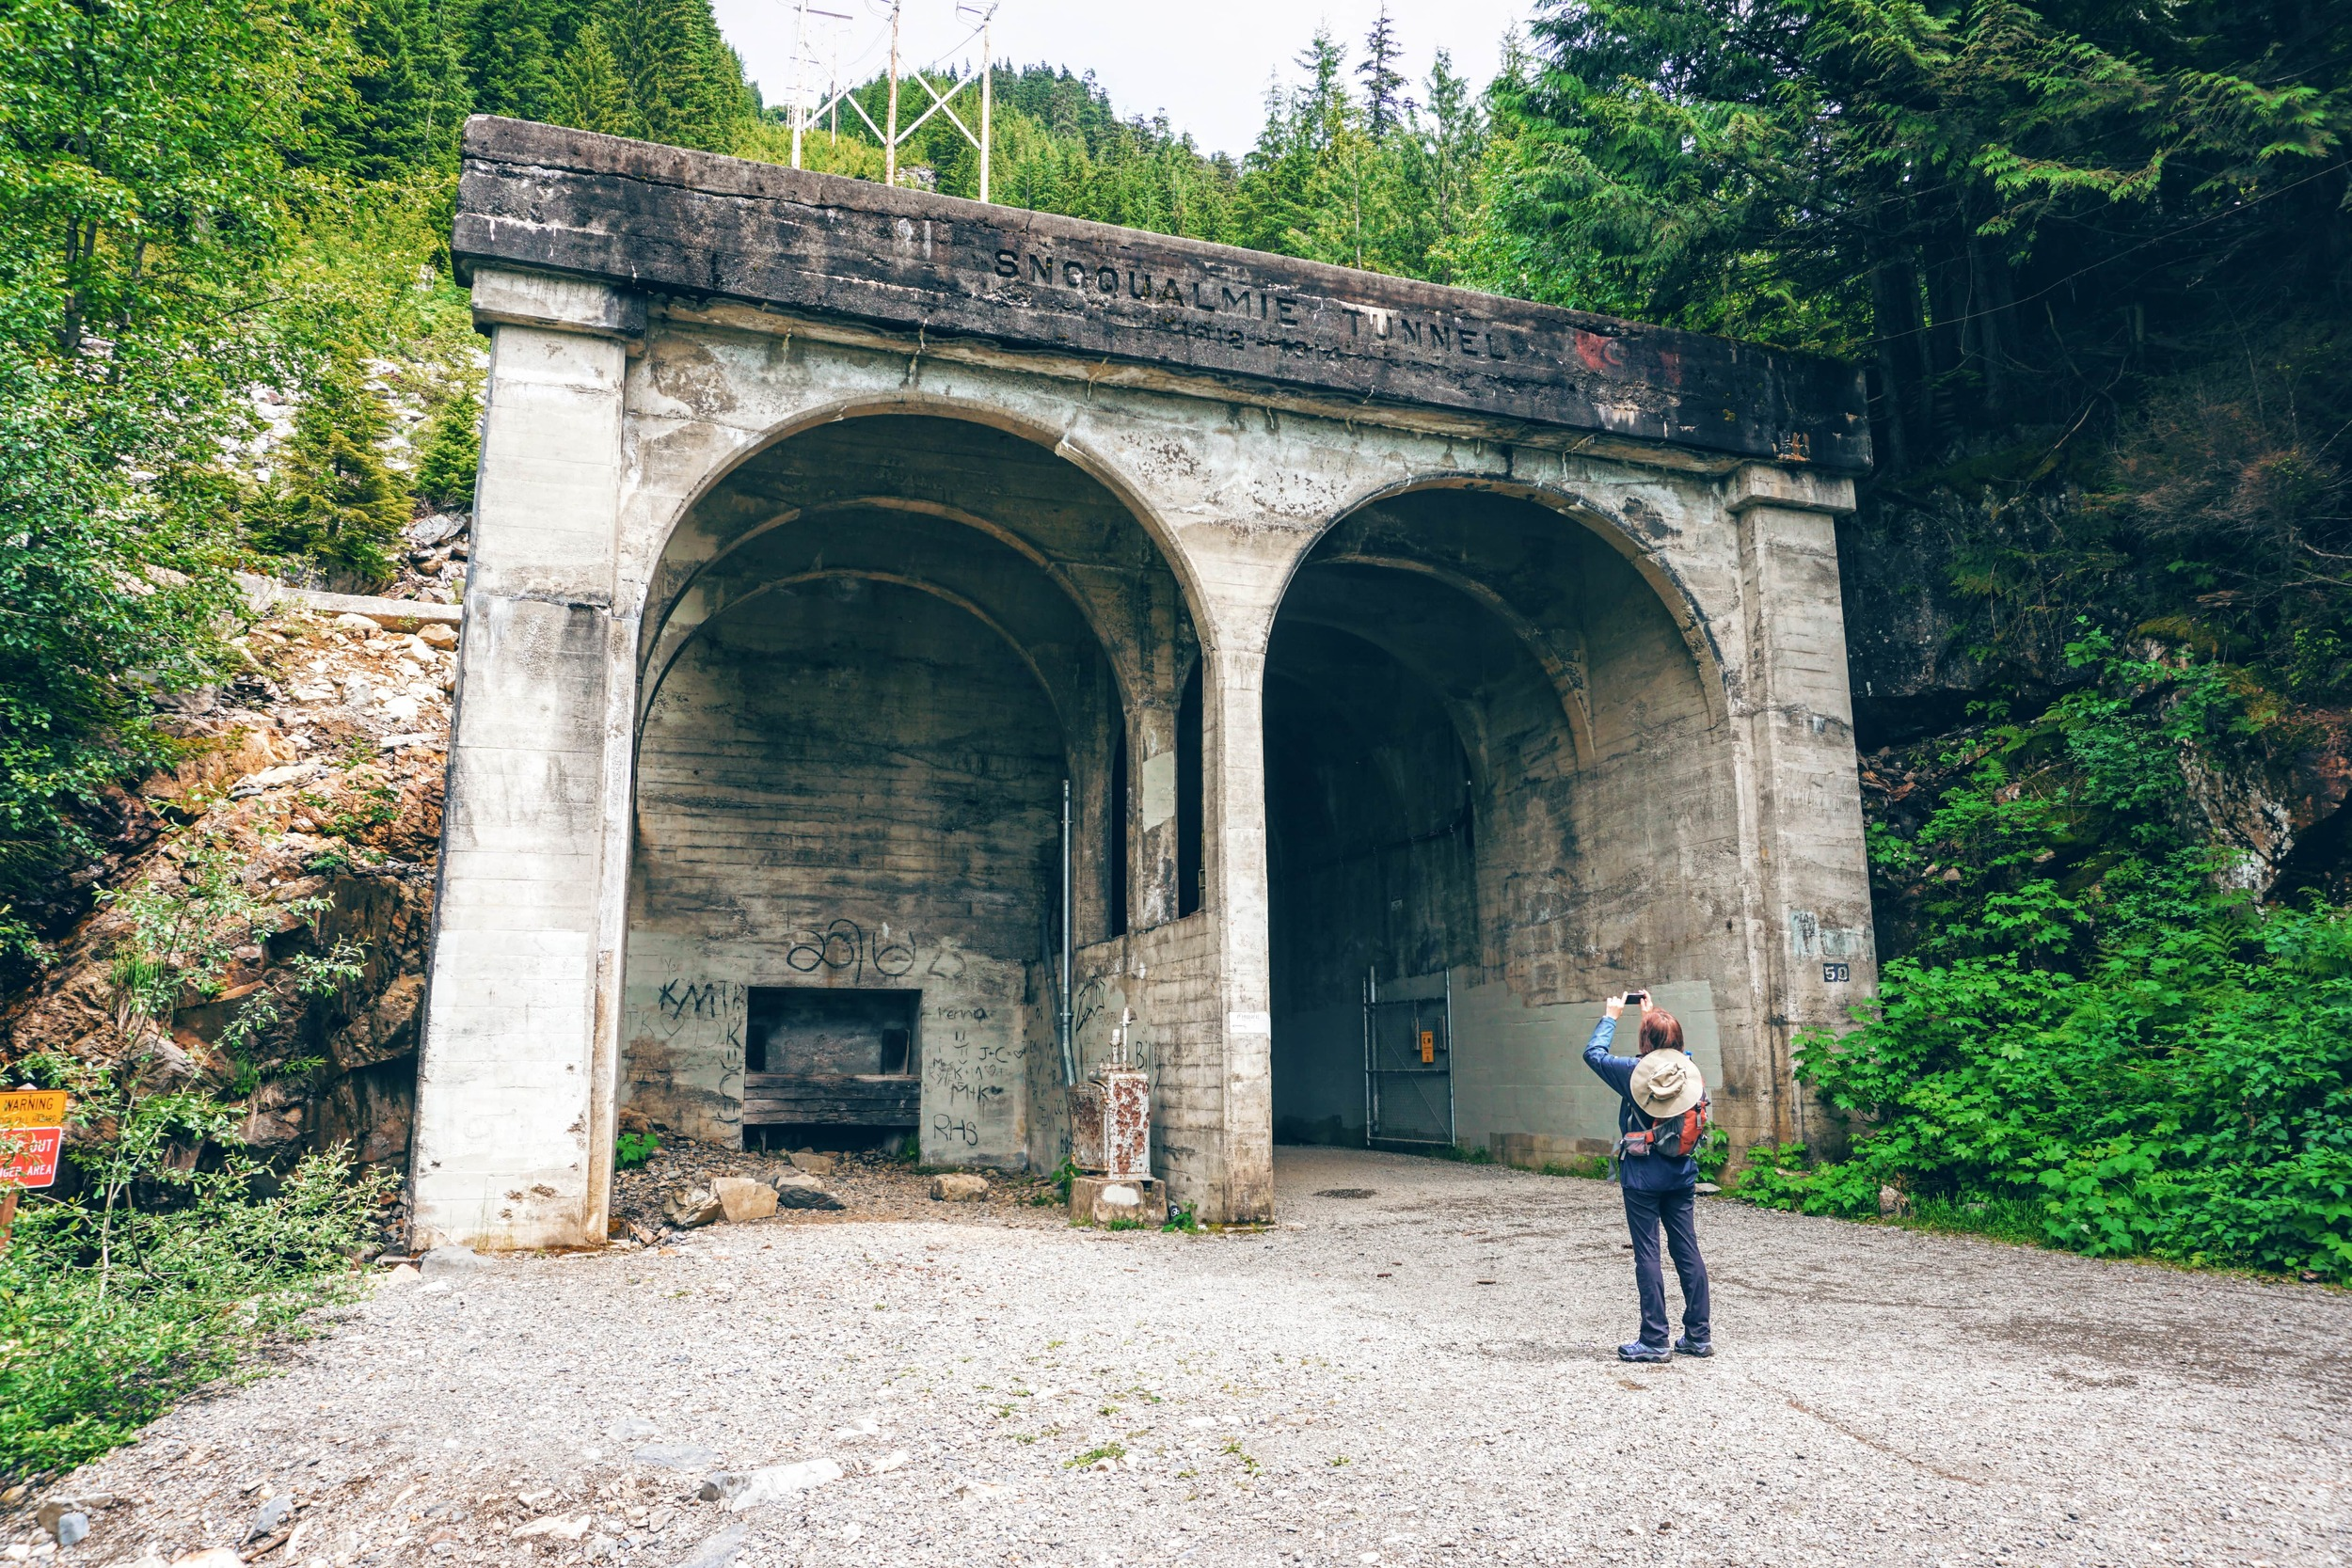 East Side Entrance of Snoqualmie Tunnel